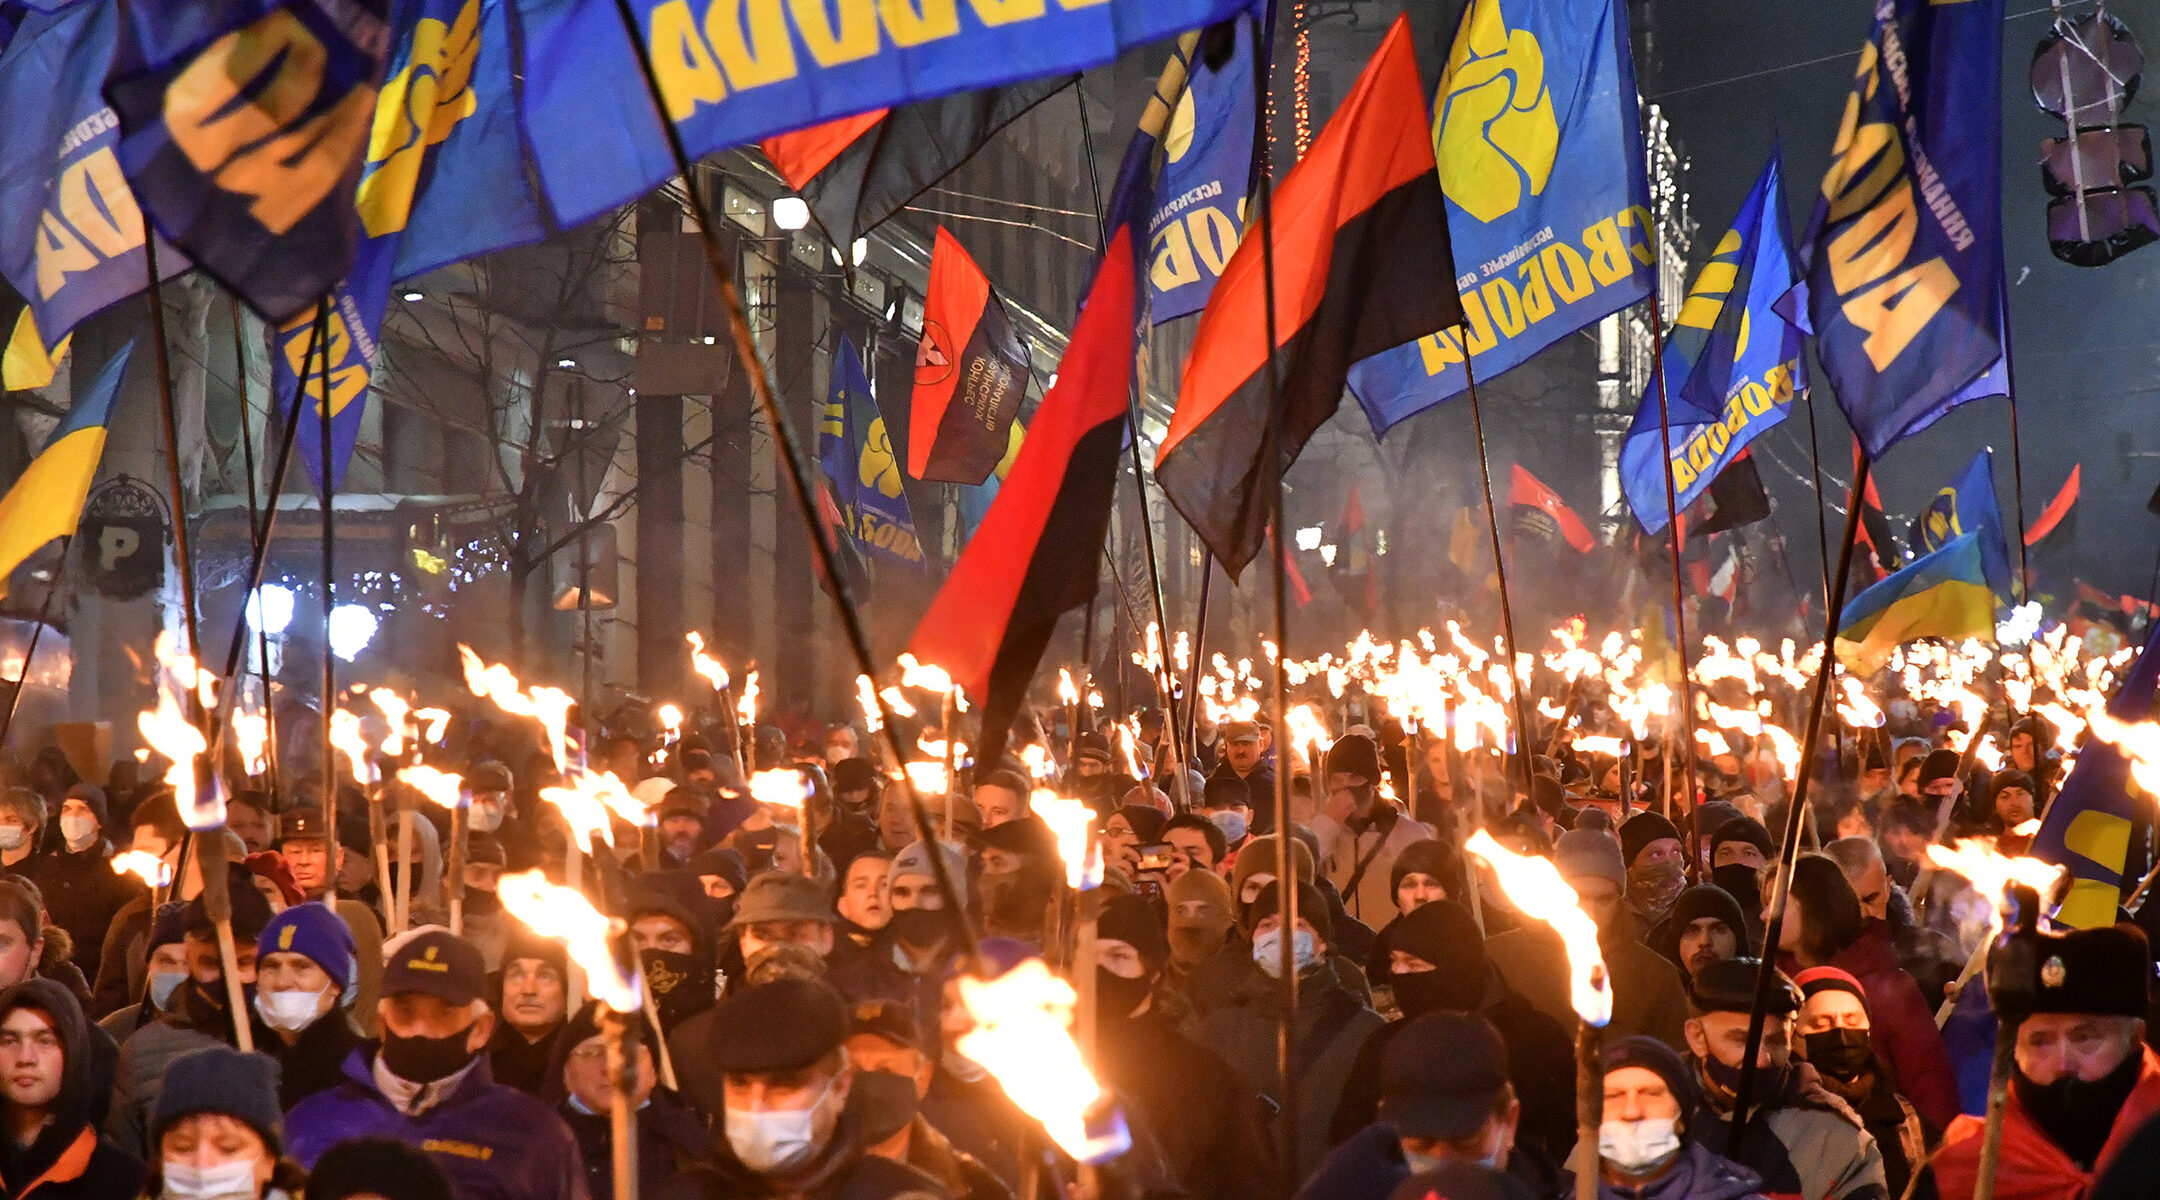 Participants of an annual event in honor of Stepan Bandera march through Kyiv, Ukraine on Jan. 1, 2021. (Genya Savilou/AFP via Getty Images)